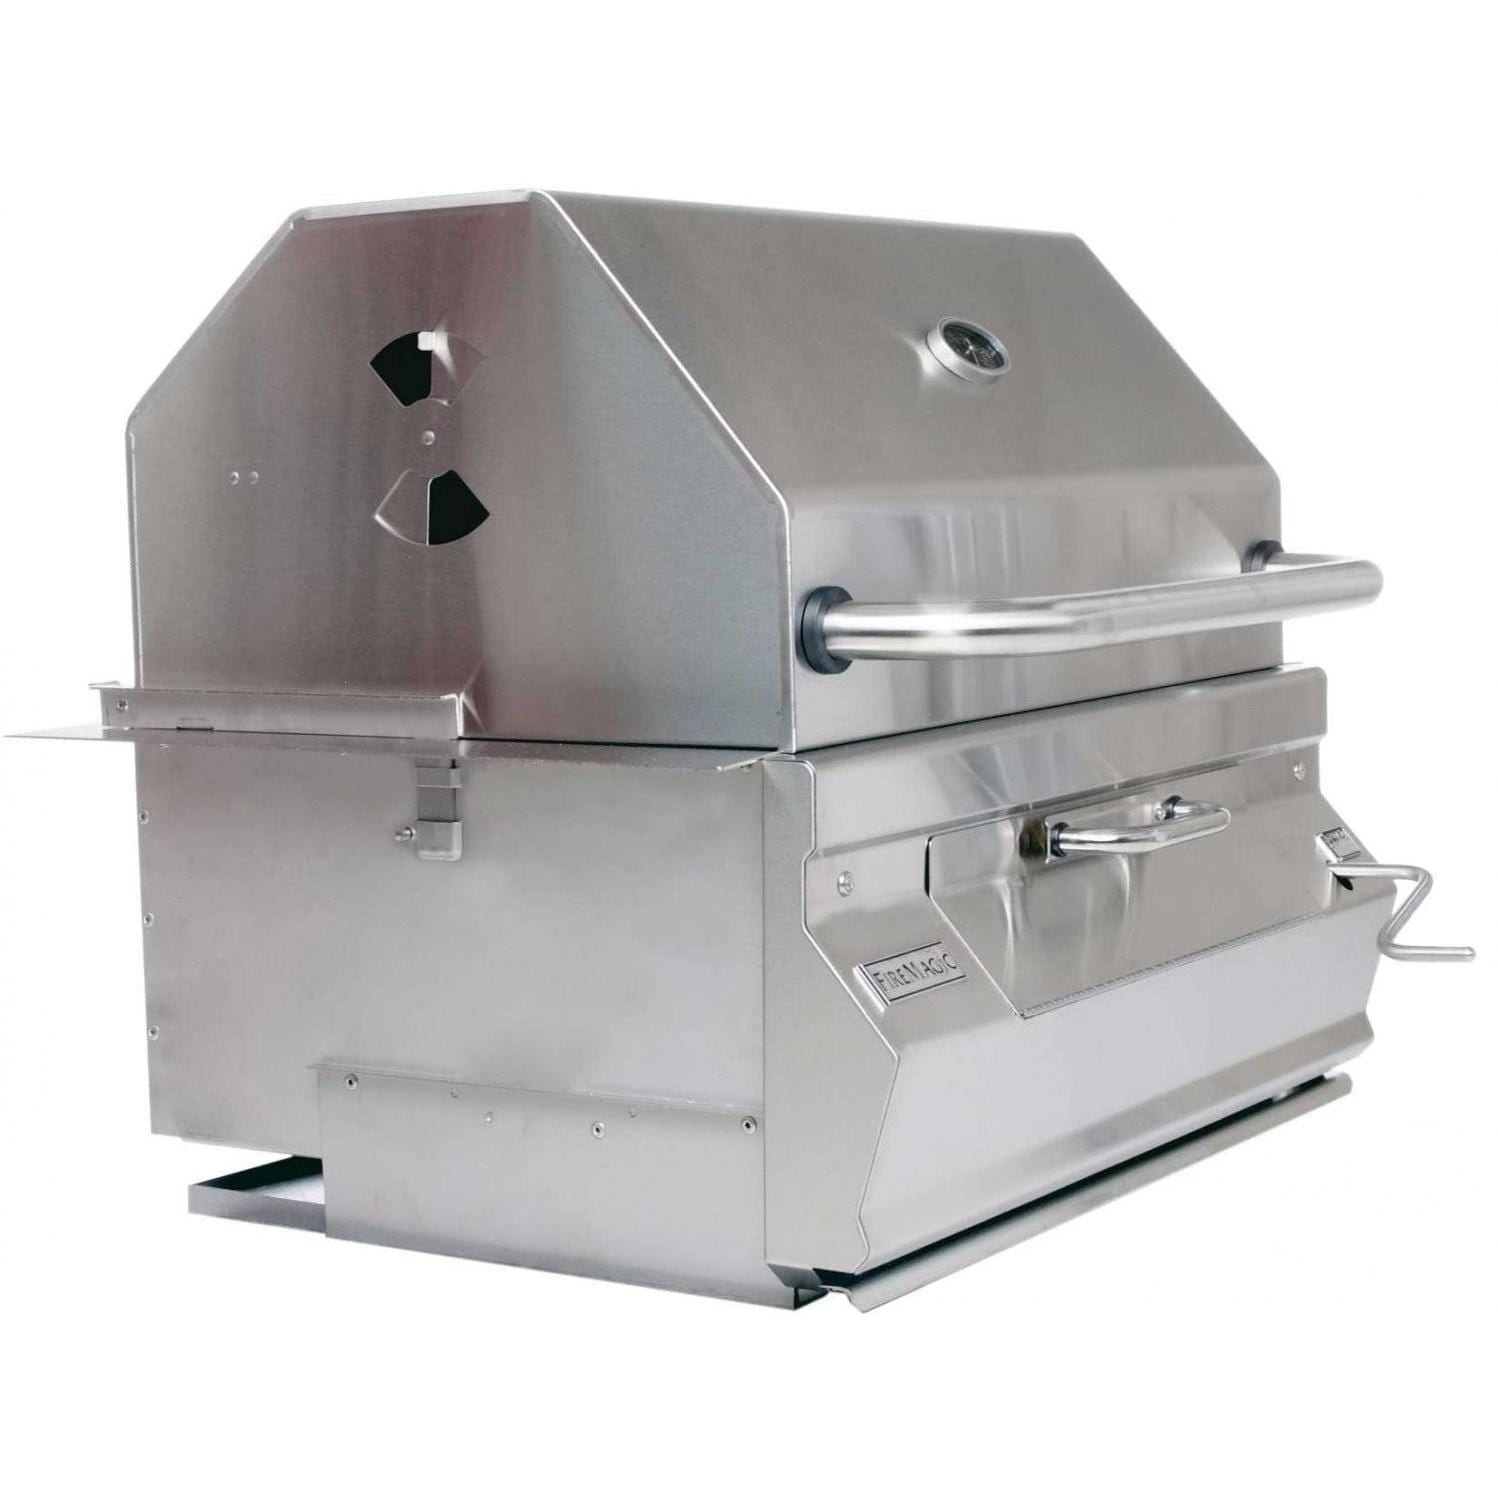 Fire Magic Outdoor Kitchen: Fire Magic Legacy Meat Smoker Charcoal Grill 30-Inch